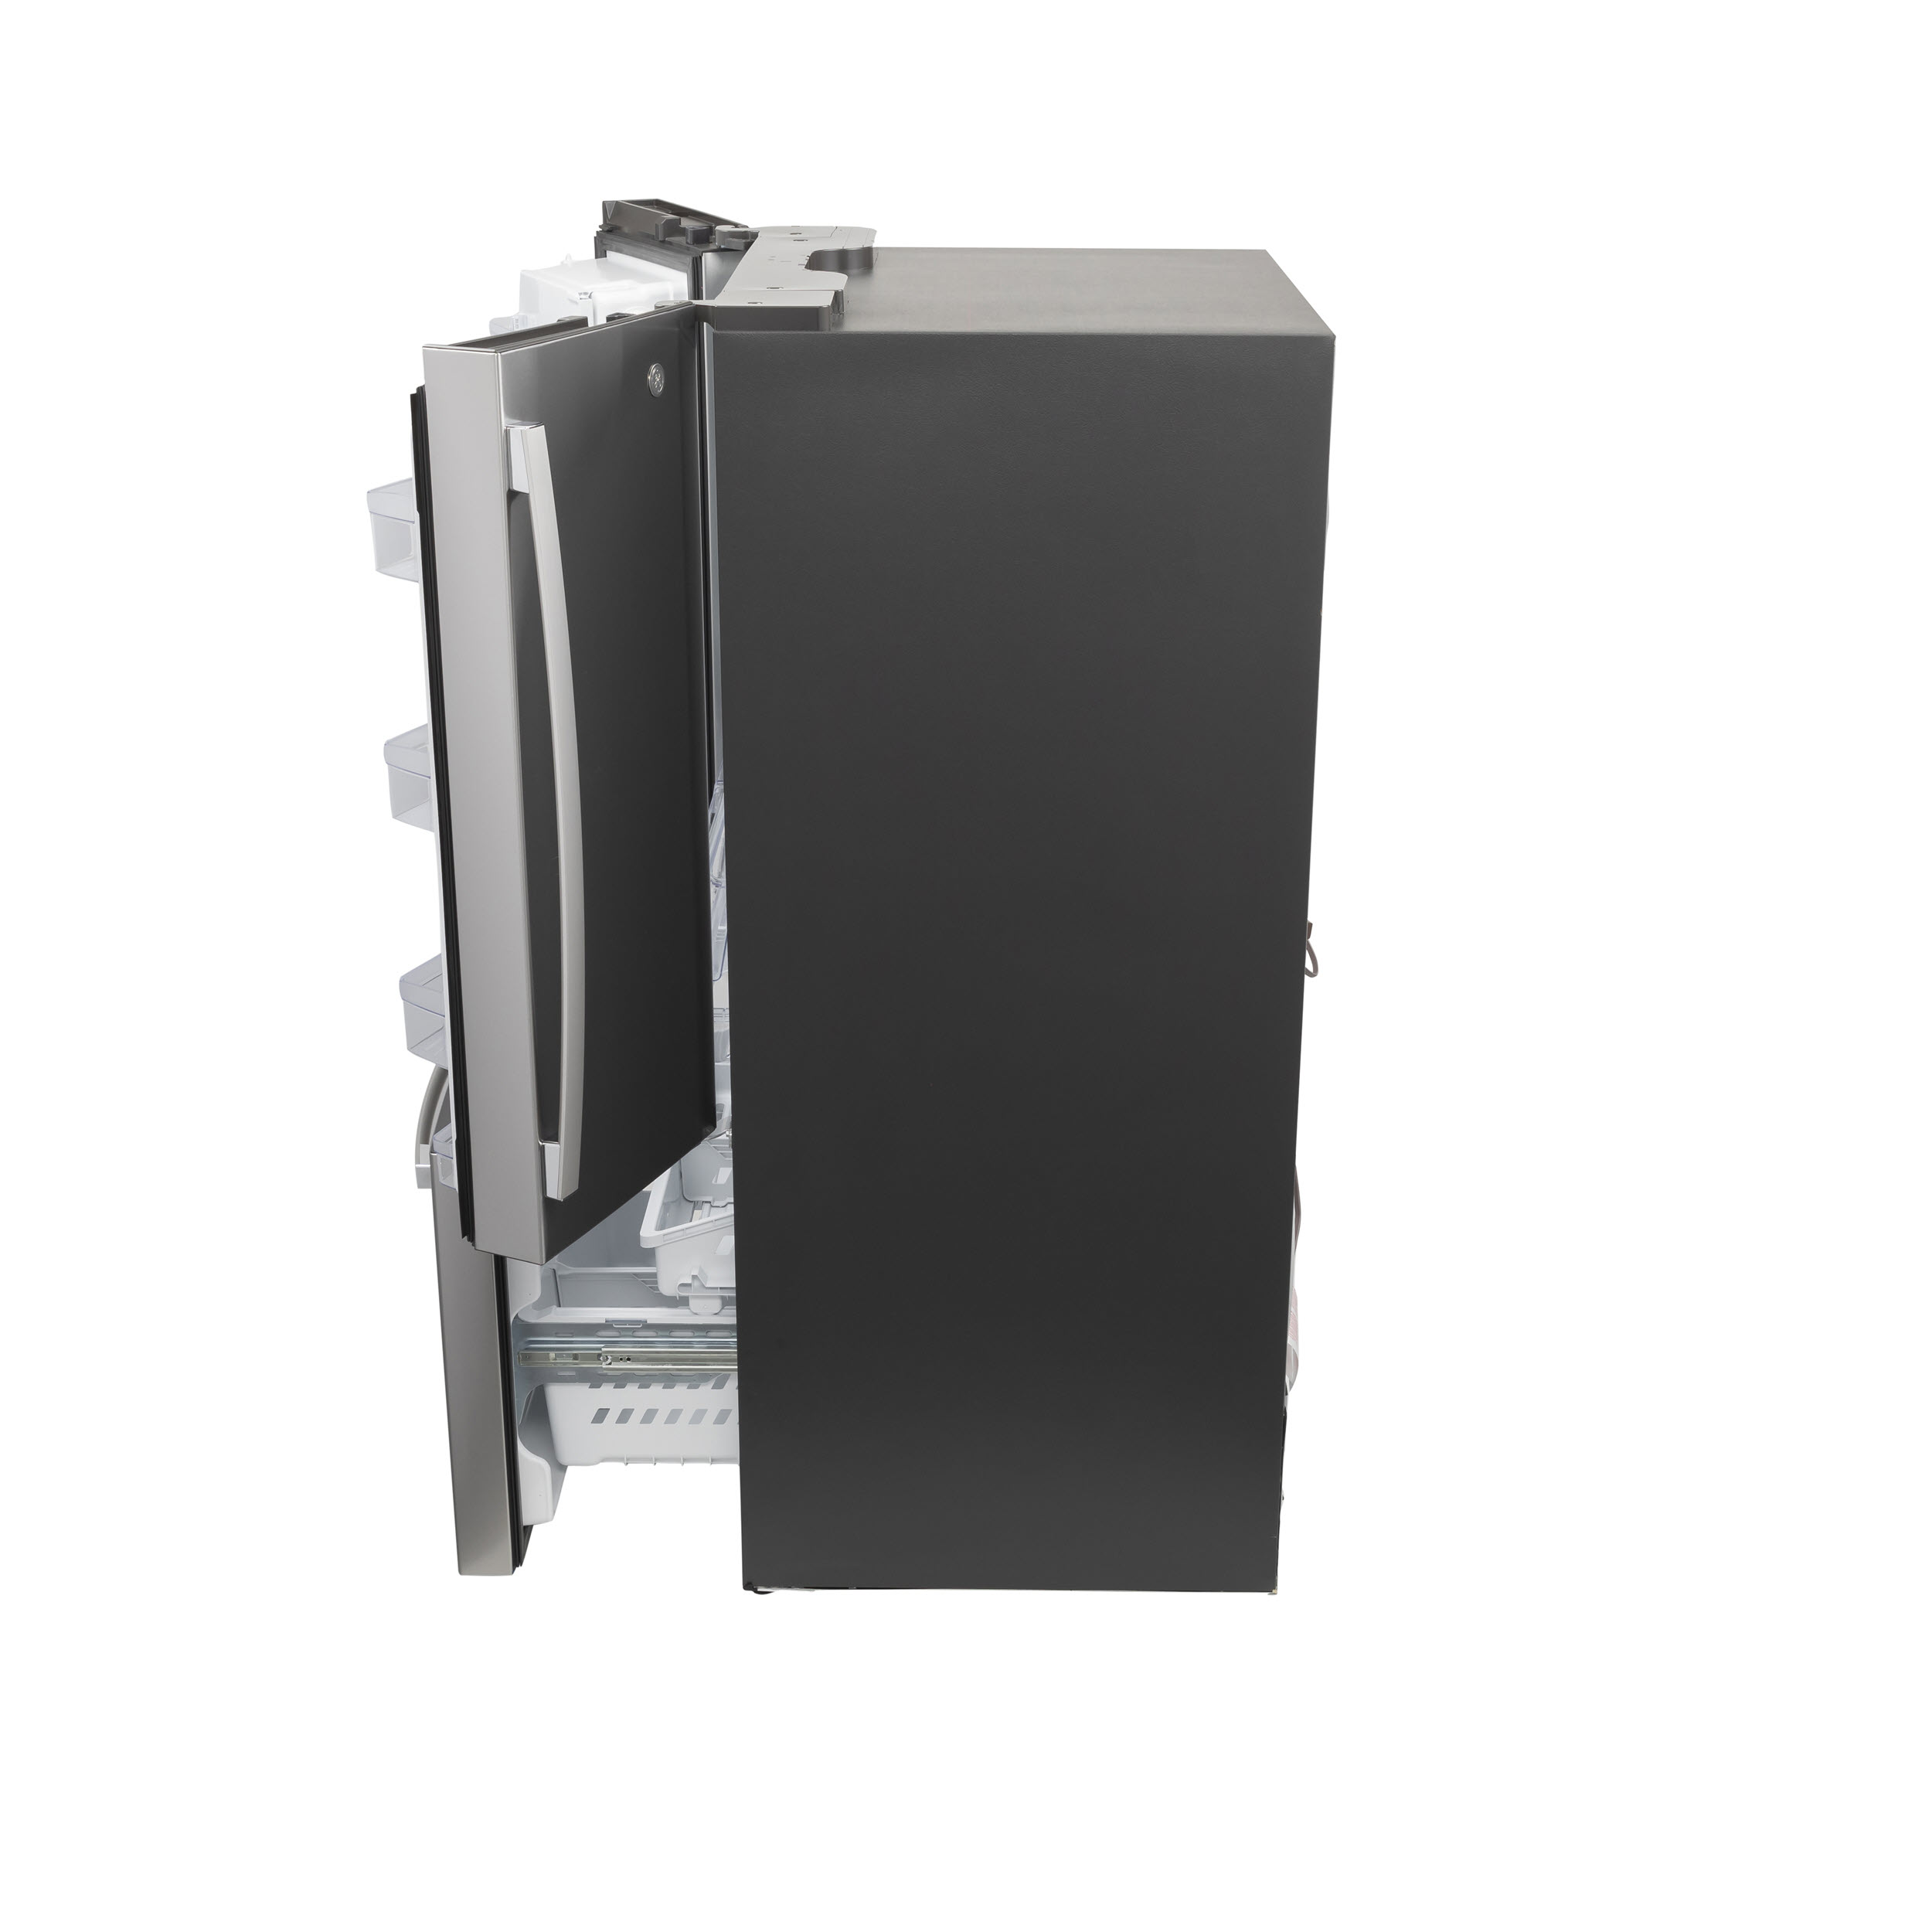 Model: GFE26JYMFS | GE GE® ENERGY STAR® 25.6 Cu. Ft. Fingerprint Resistant French-Door Refrigerator